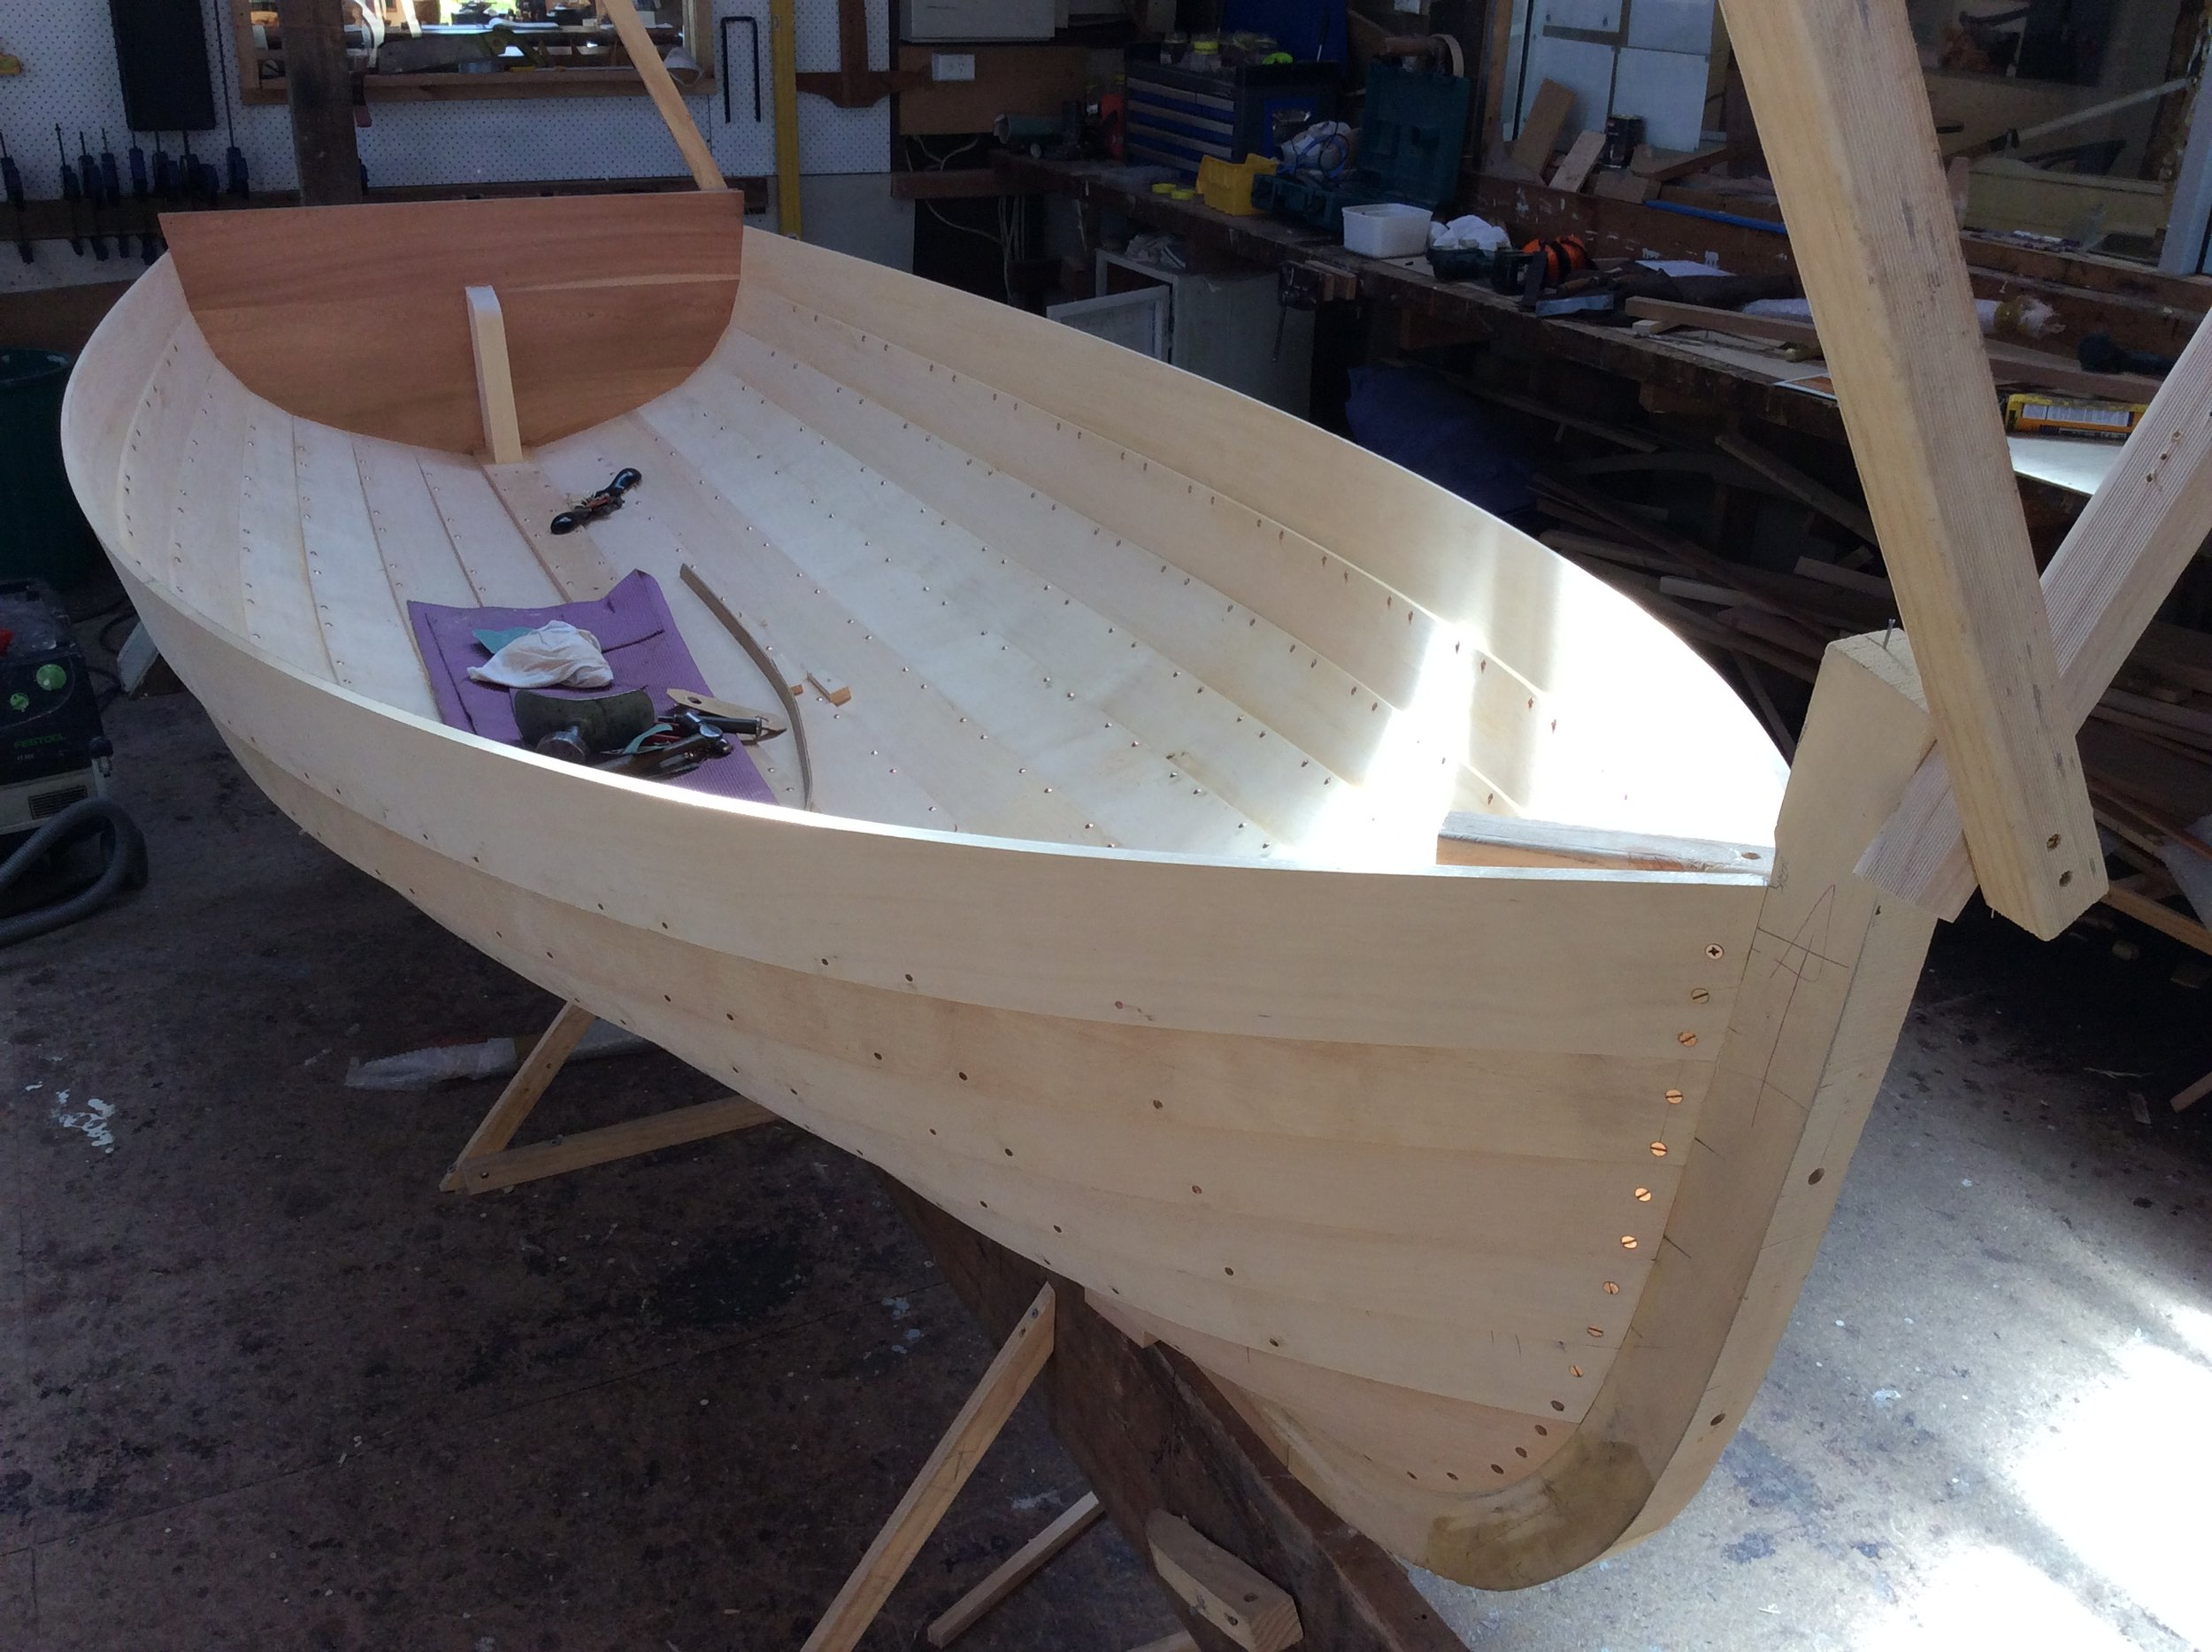 One of Bill Foster's dinghy designs under construction.  This was designed for use by Bill's daughter, as I understand.  This is being built by Mike Johnson with Huon Pine planking and King Billy Pine transom.  The moulds are just out, next stage is to put the ribs in.